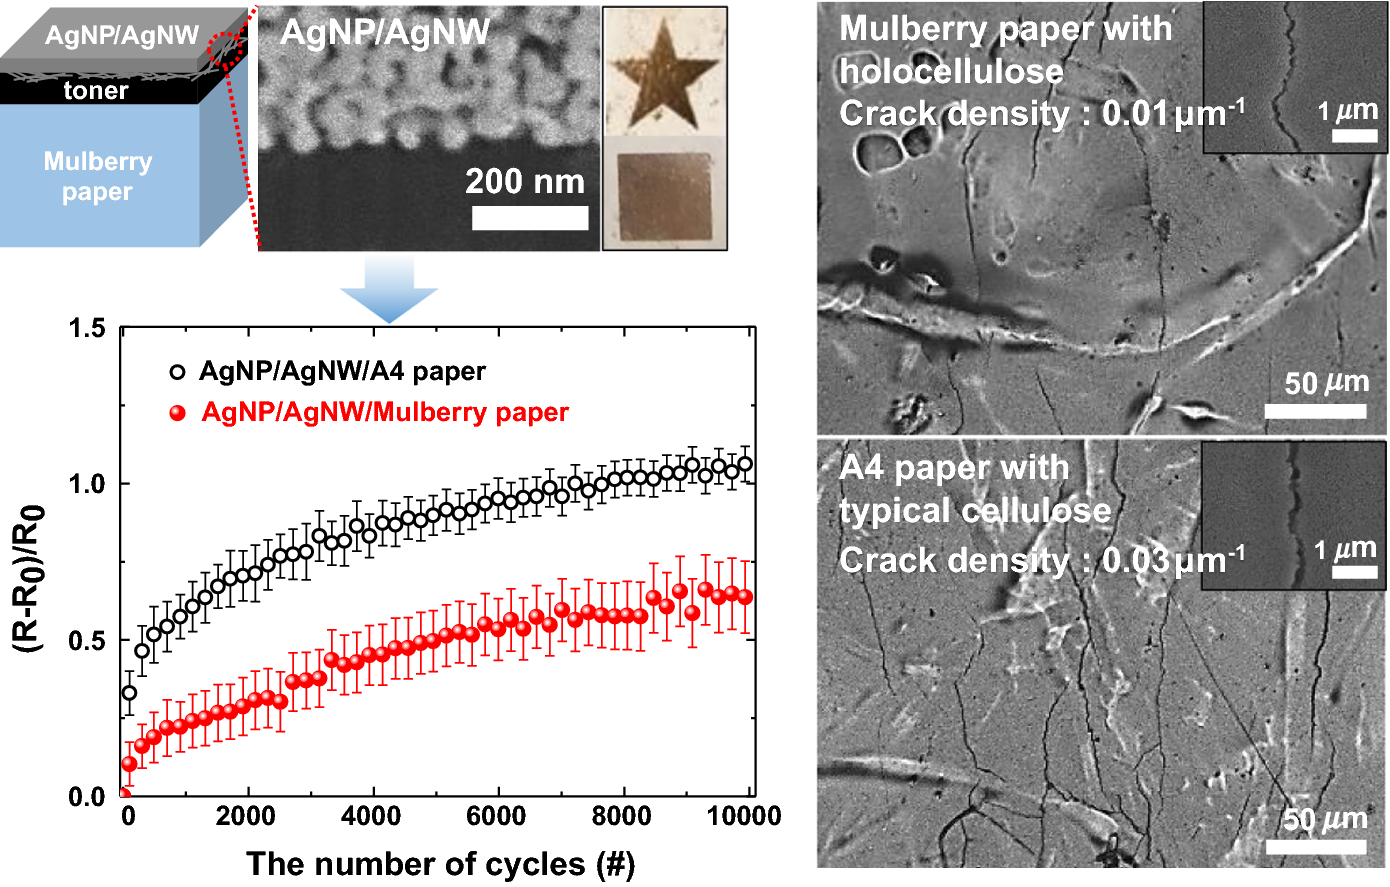 Mulberry-paper-based composites for flexible electronics and